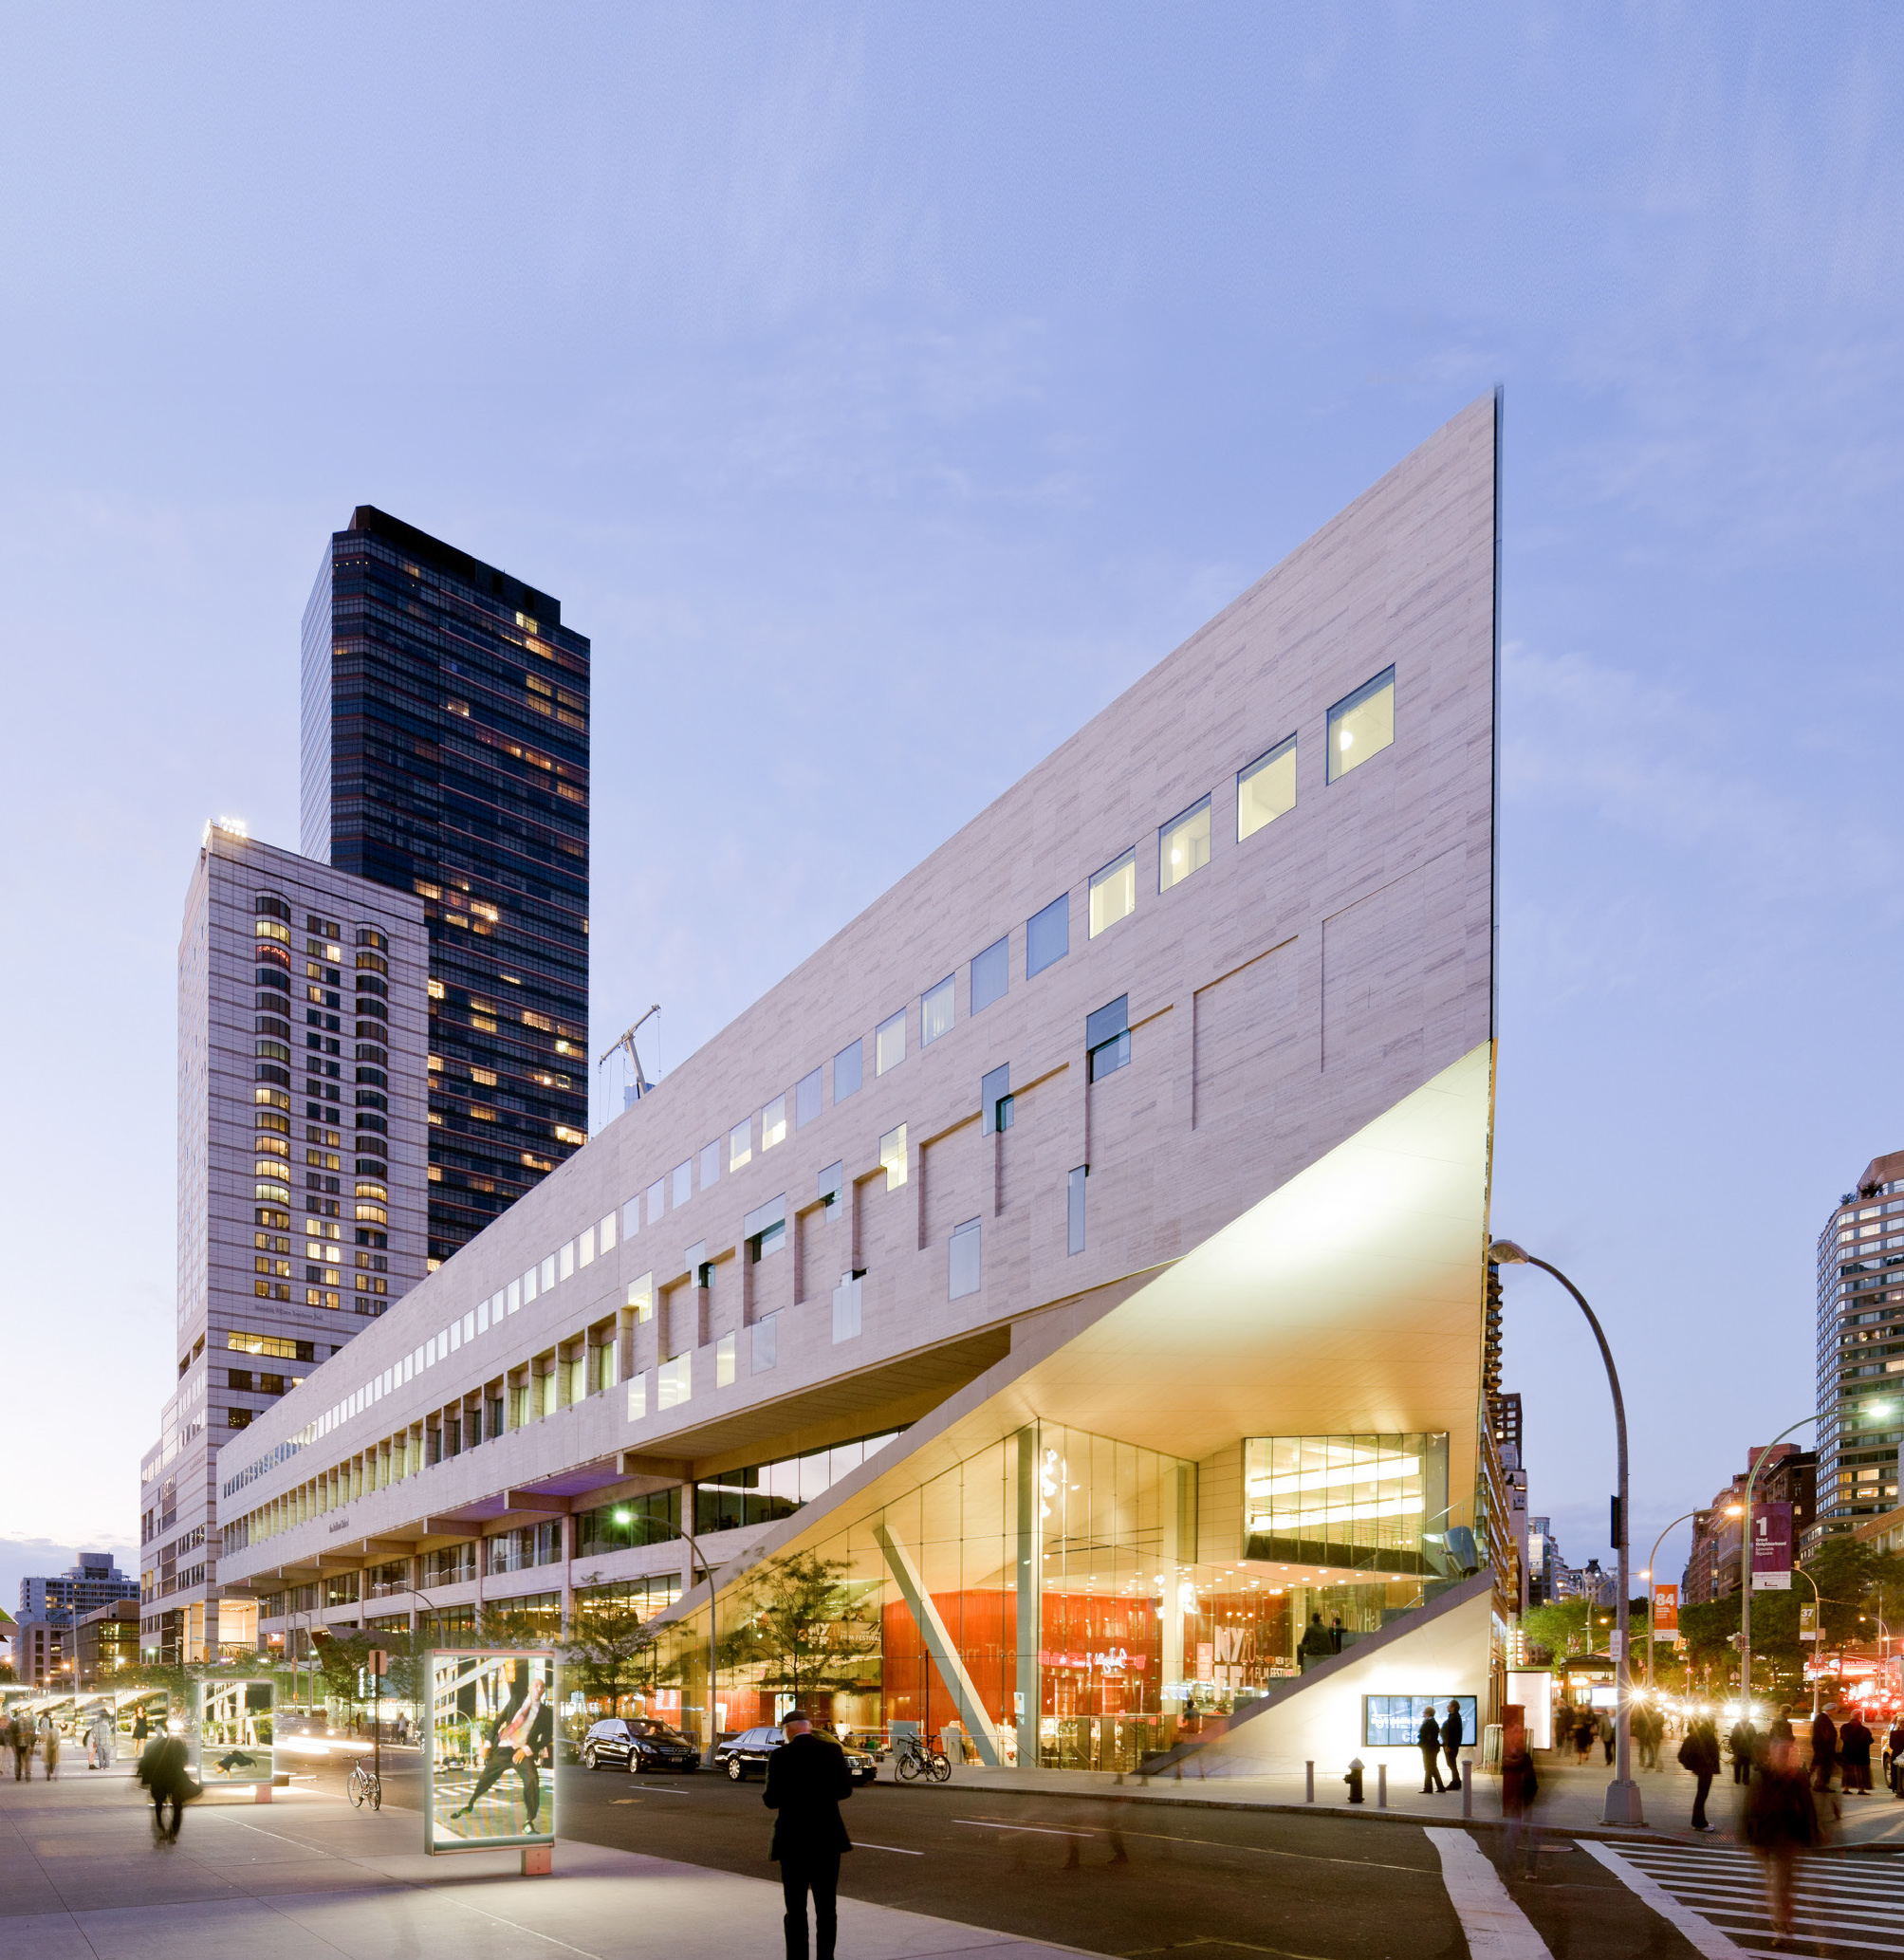 Juilliard School Renovation and Expansion